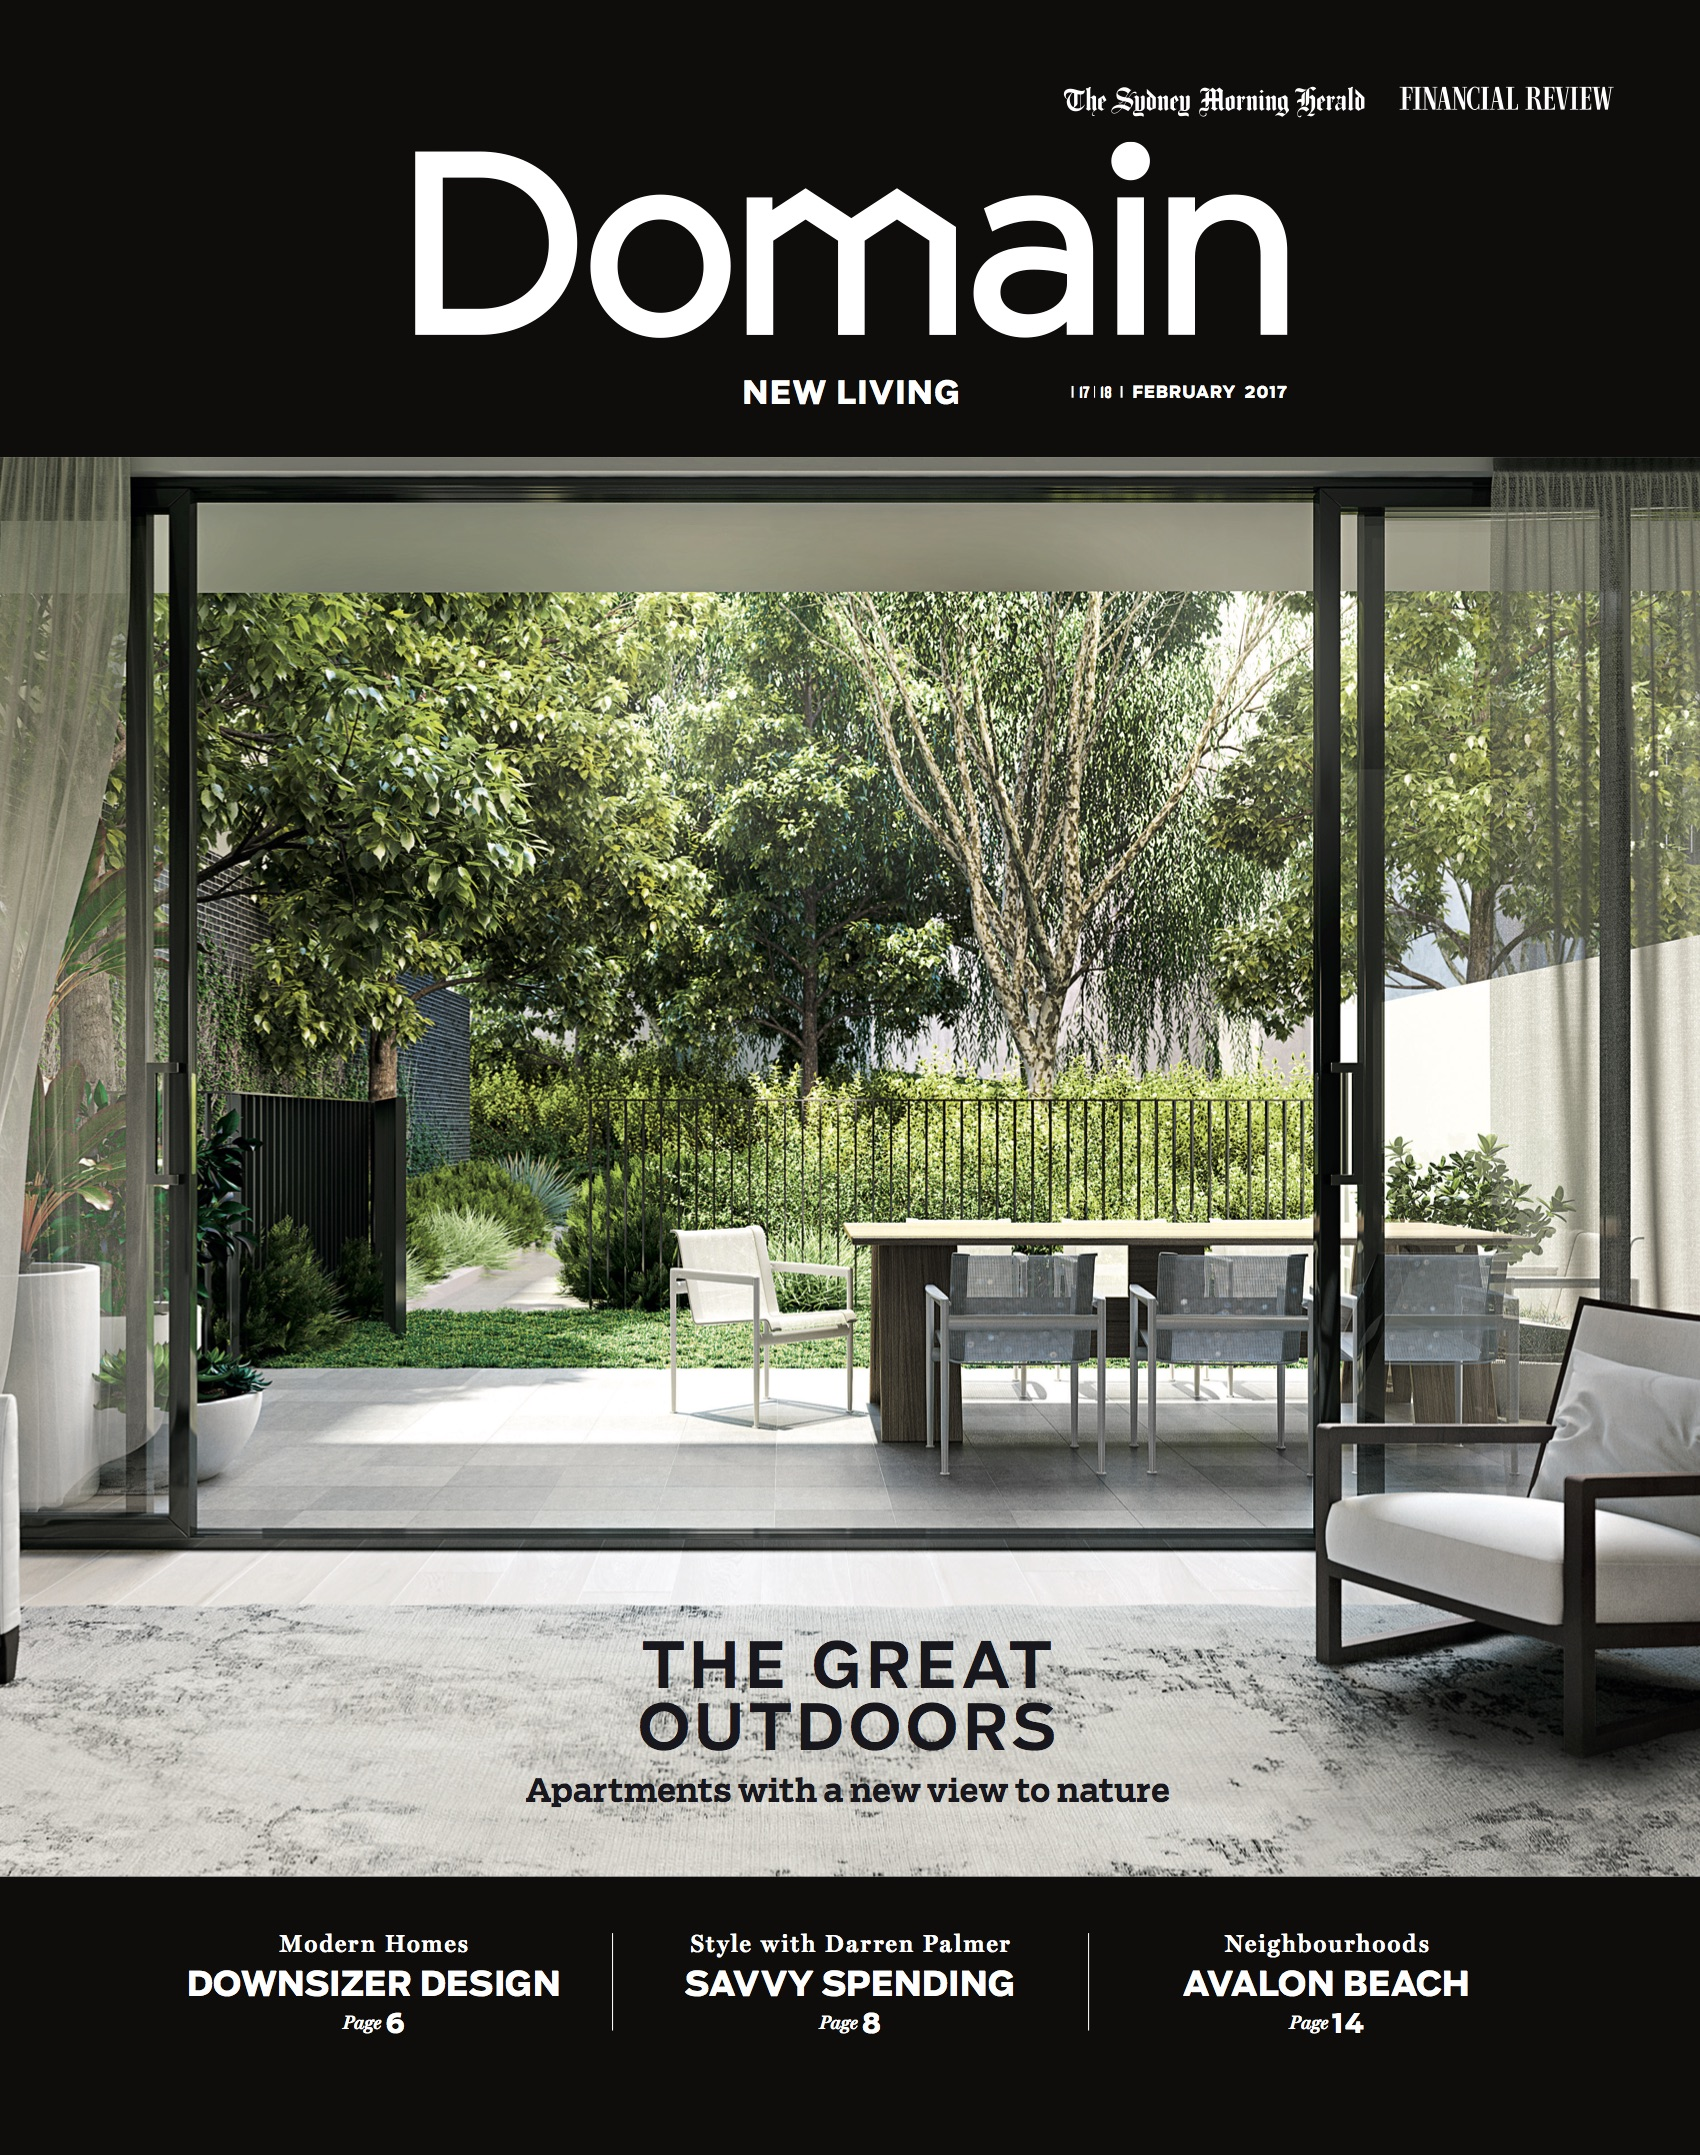 Domain Back Cover - New Living - SMH